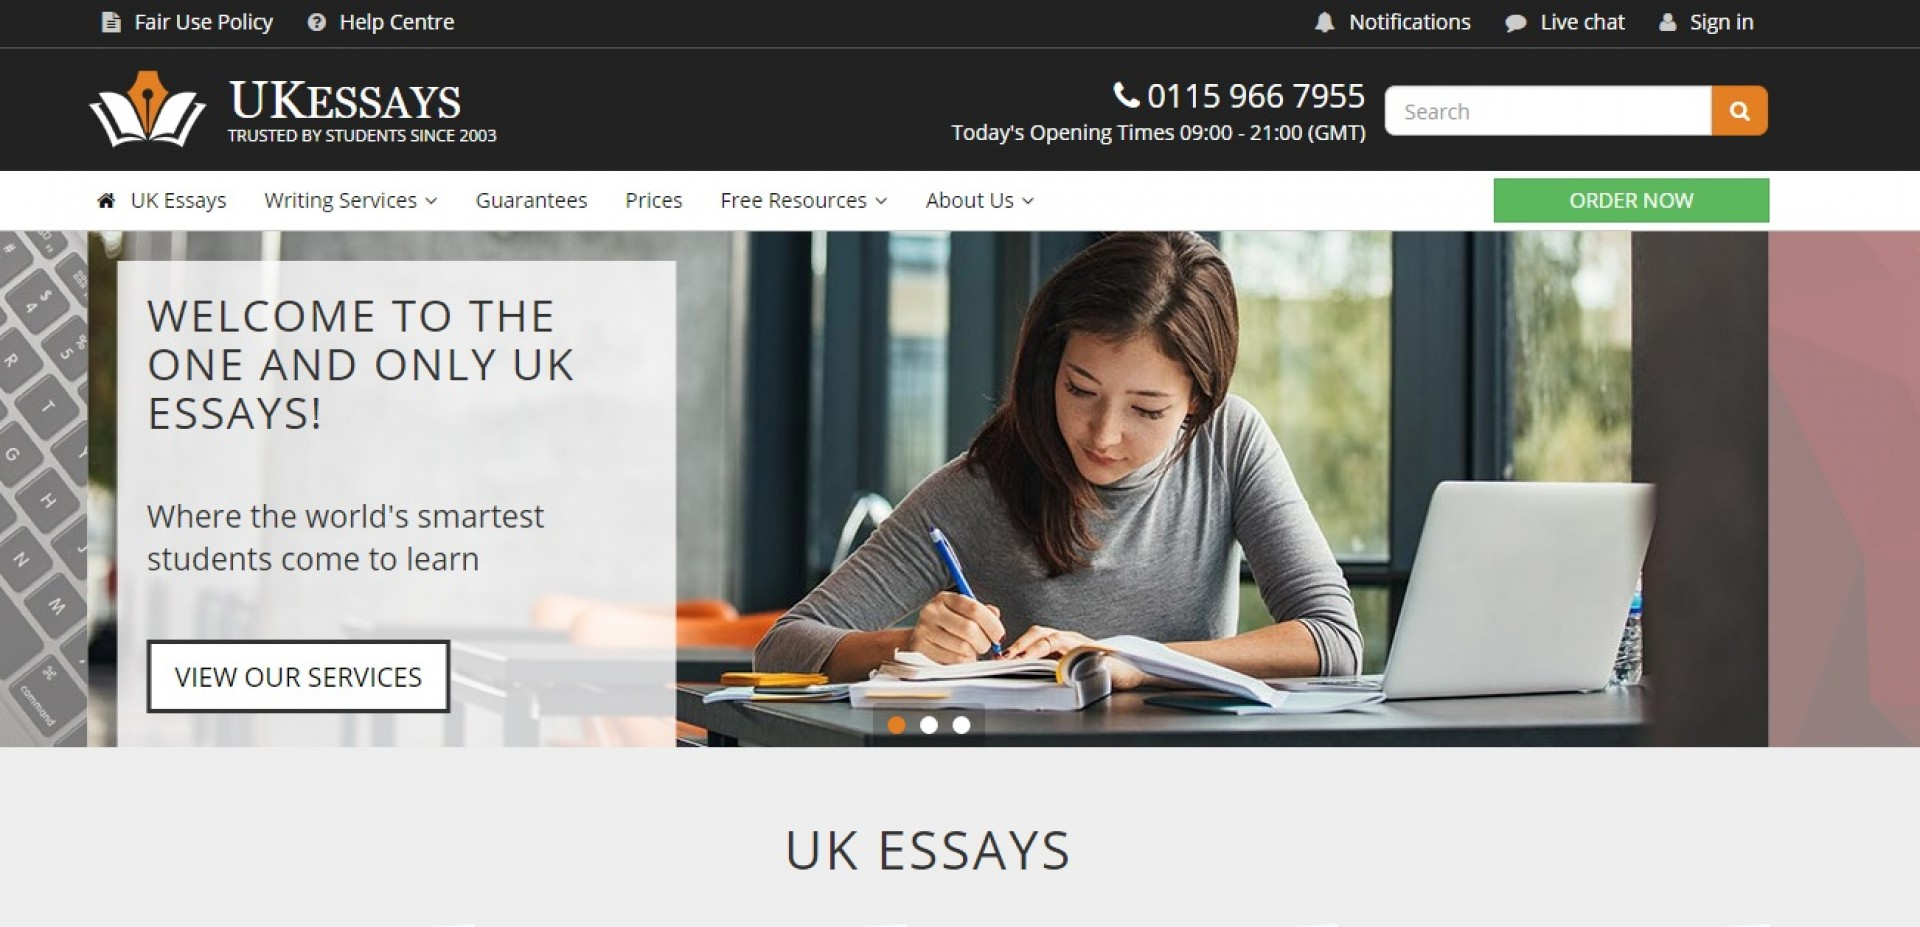 005 Essay Example Ukessays Uk Stupendous Essays Discount Nursing Apa 1920